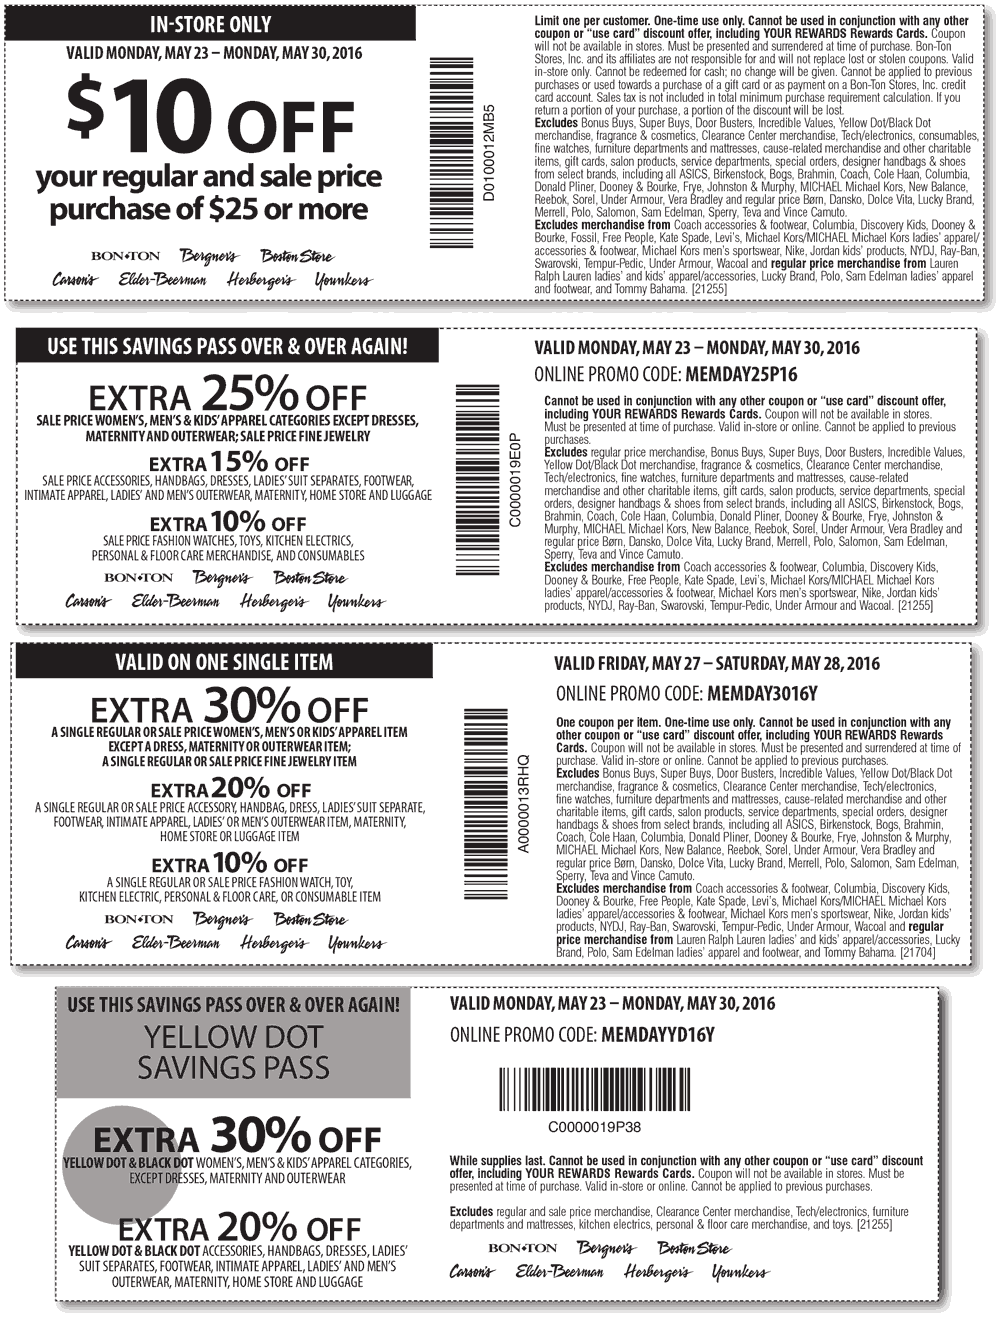 Carsons Coupon August 2017 $10 off $25 & more at Carsons, Bon Ton & sister stores, or 25% online via promo code MEMDAY25P16